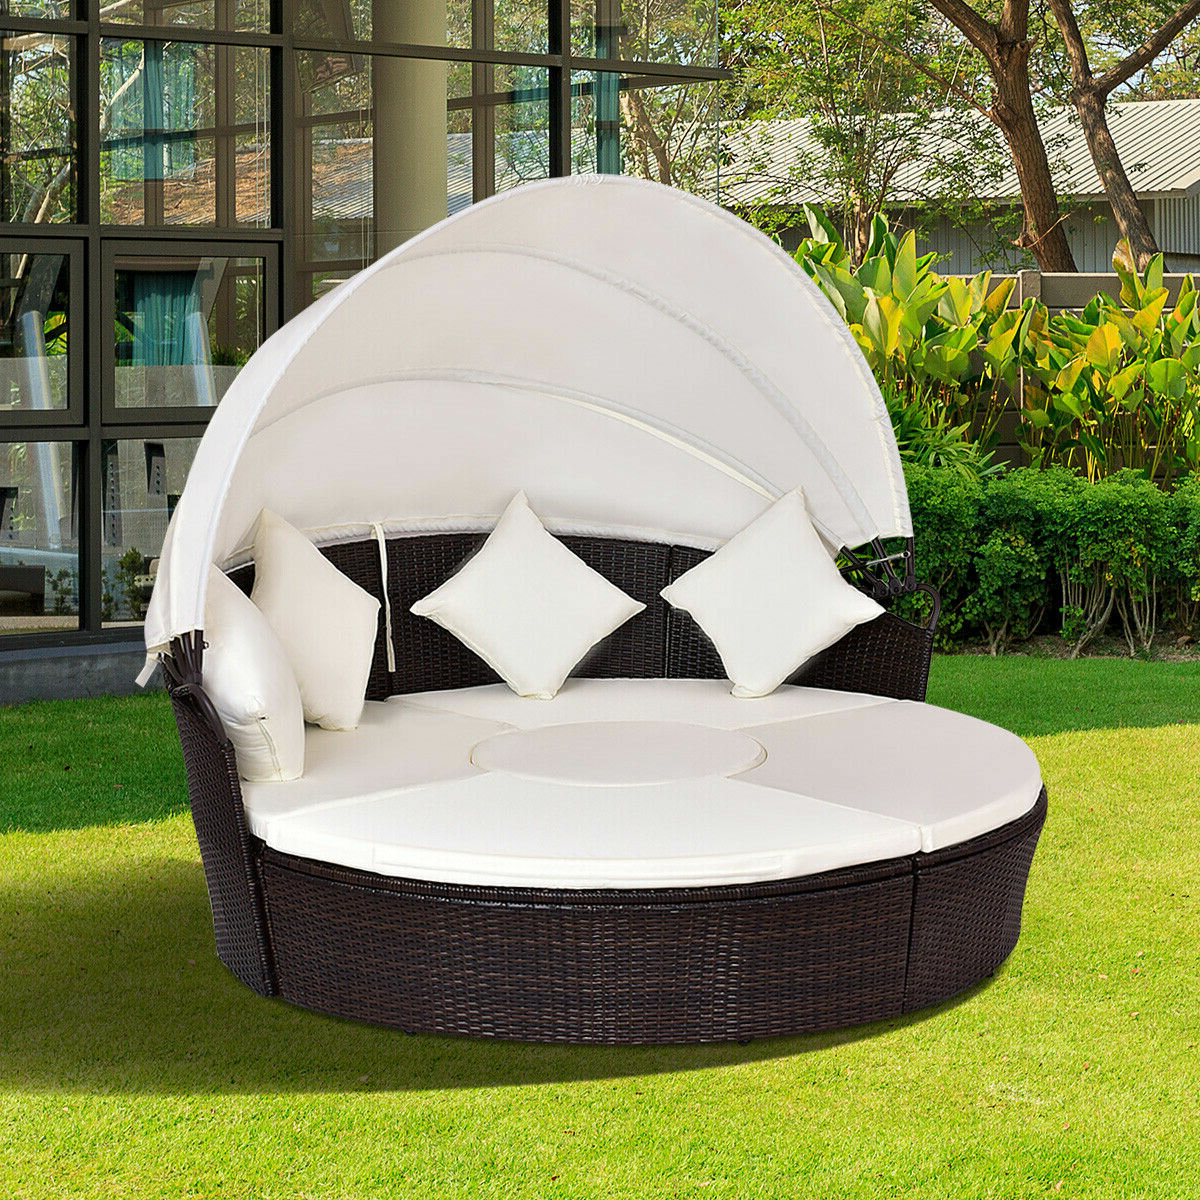 Widely Used Sharleen Patio Daybed With Cushions Within Brennon Cube Patio Daybeds With Cushions (Gallery 22 of 25)